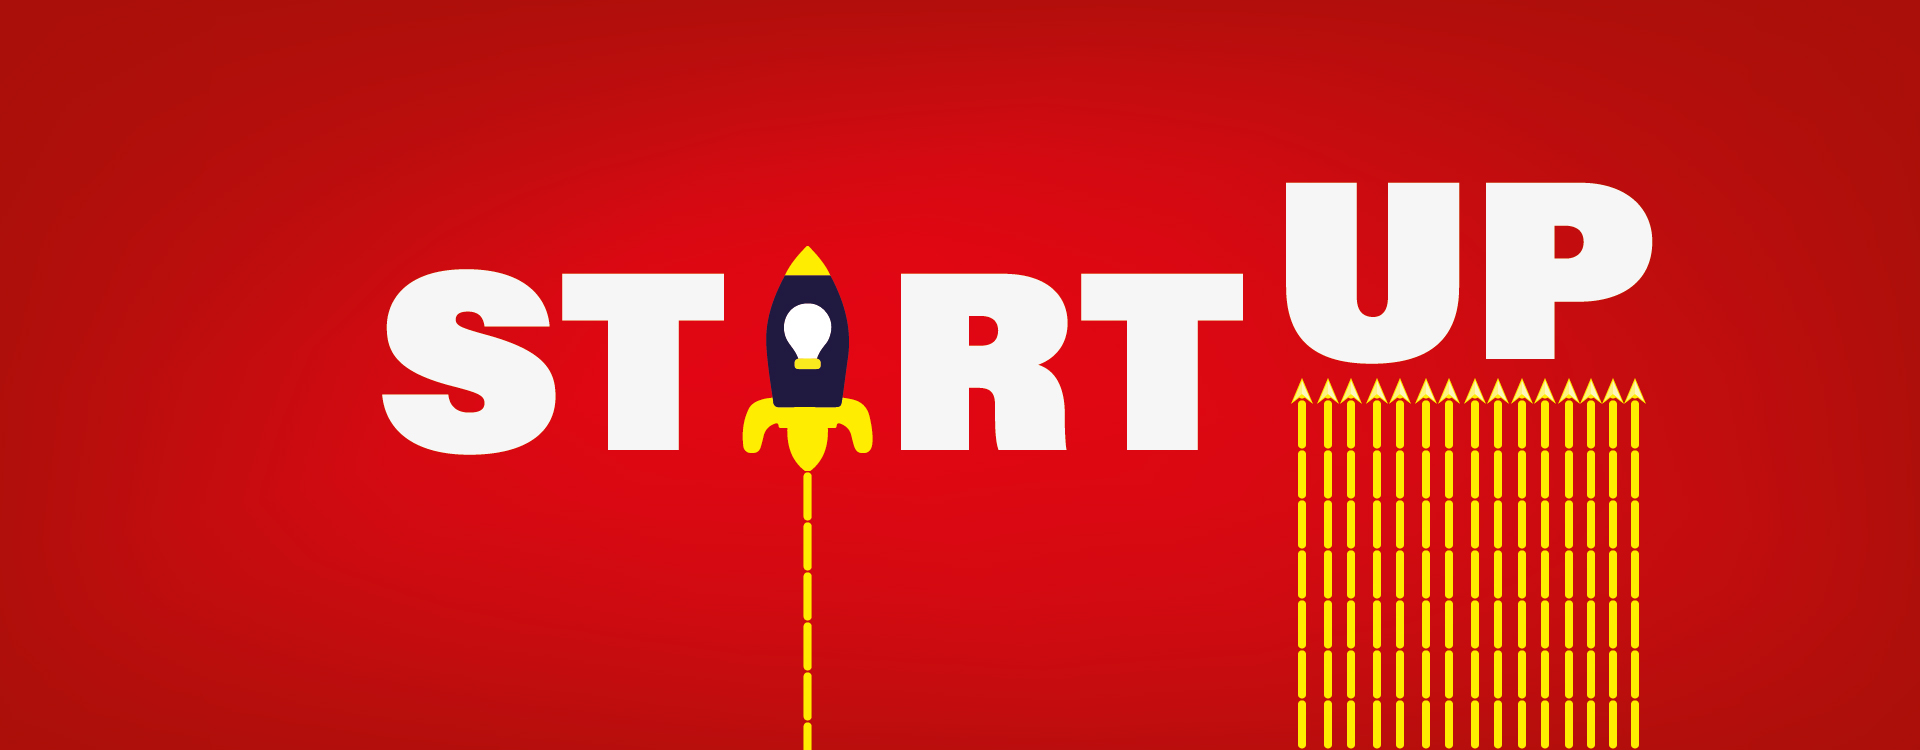 Is it the right time to quit your job and startup?